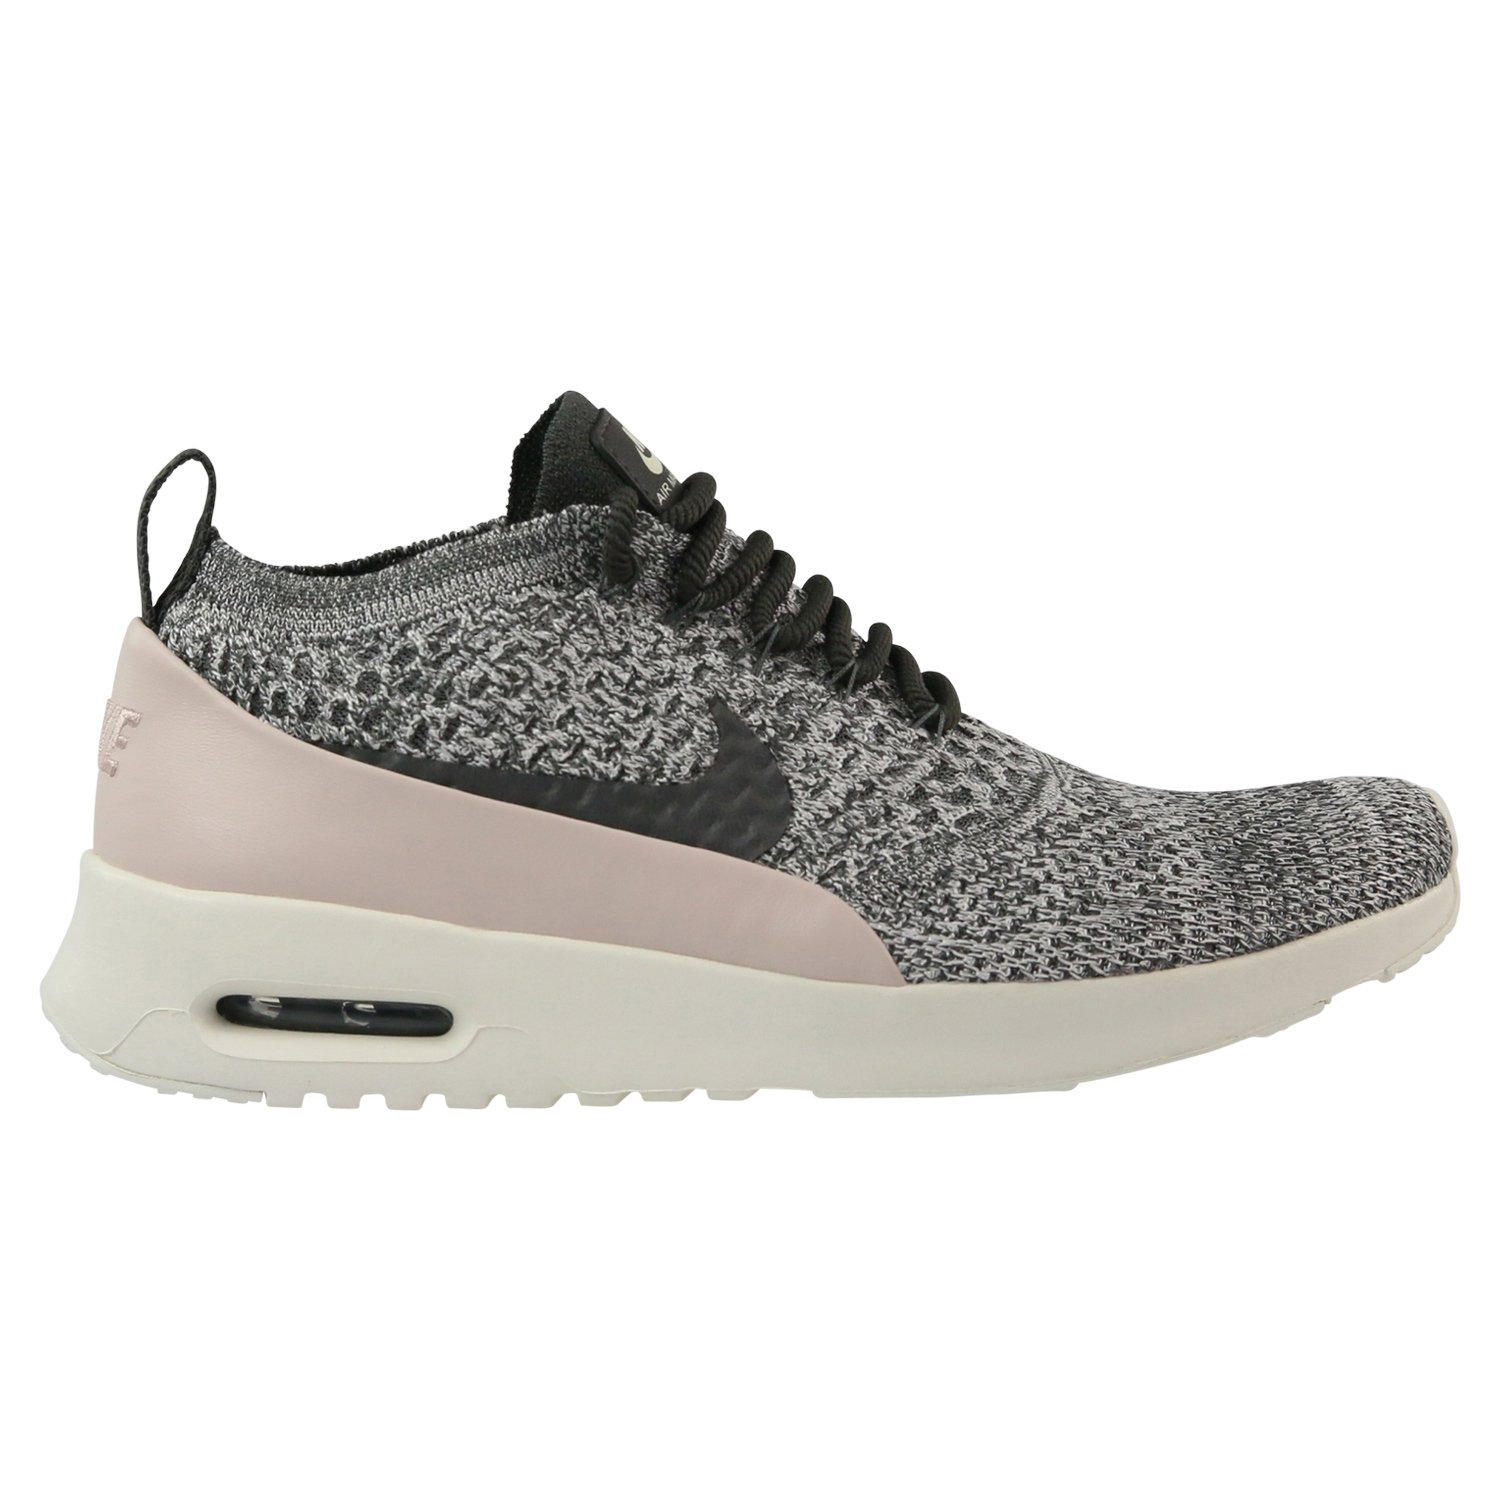 save off f4781 cb8ed Galleon - Nike Air Max Thea Ultra Fk Womens Running Trainers 881175  Sneakers Shoes (UK 6 US 8.5 EU 40, Midnight Fog 003)